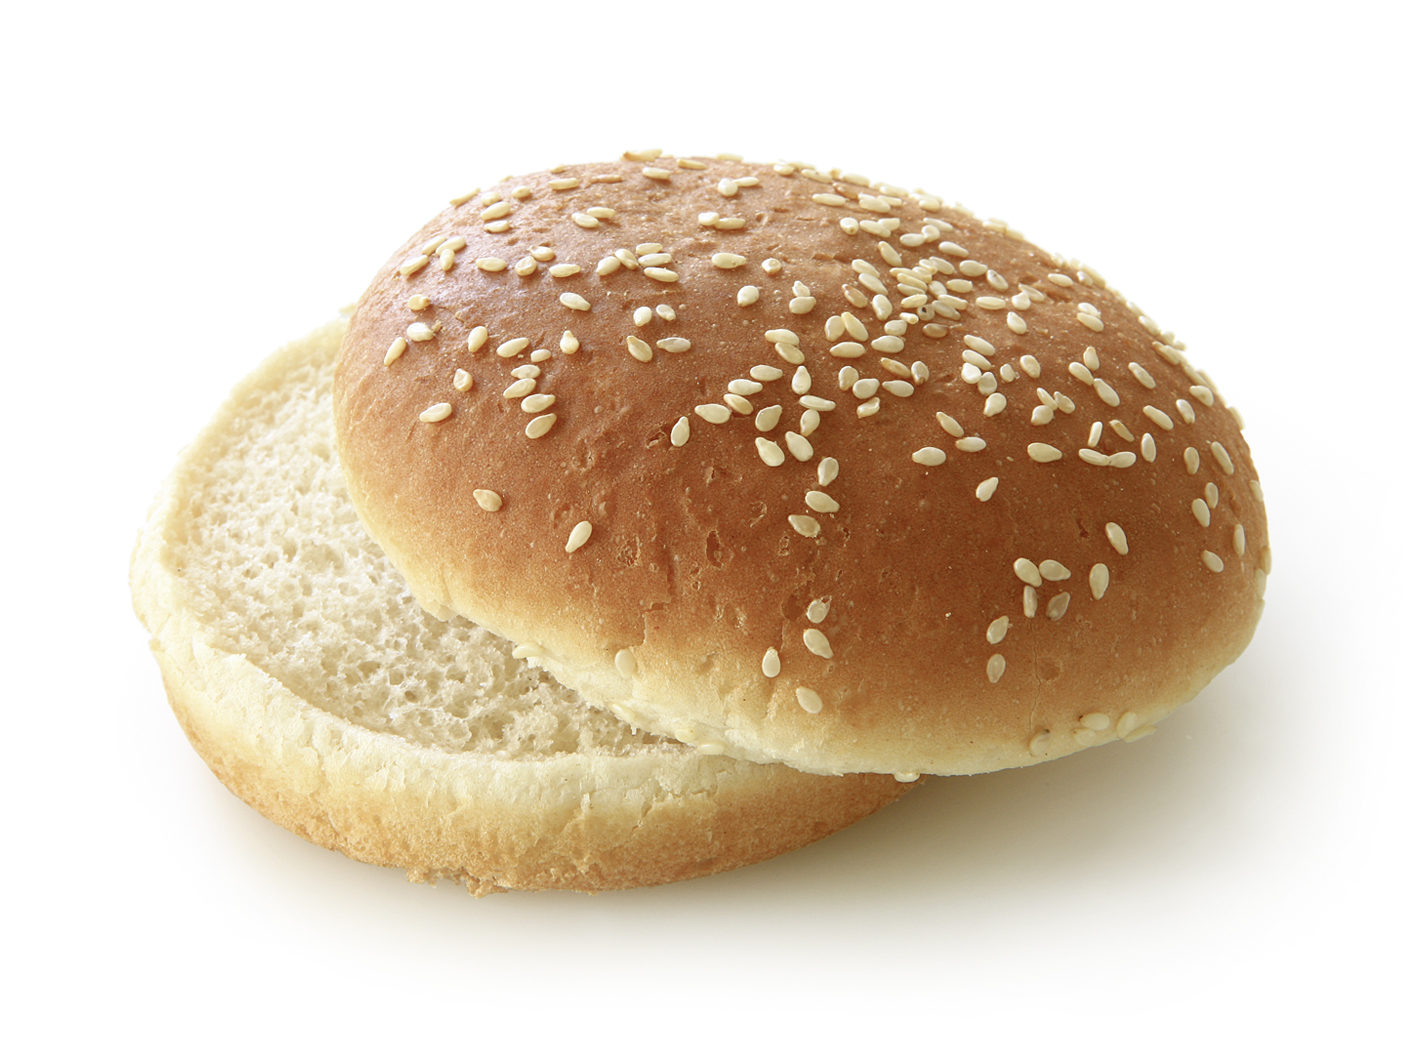 Hamburger Bun sesame seeds, sliced - Wheat roll/ traditional shape sprinkled with sesame seeds/ thaw only diameter: 10 cm/ 4 Inches